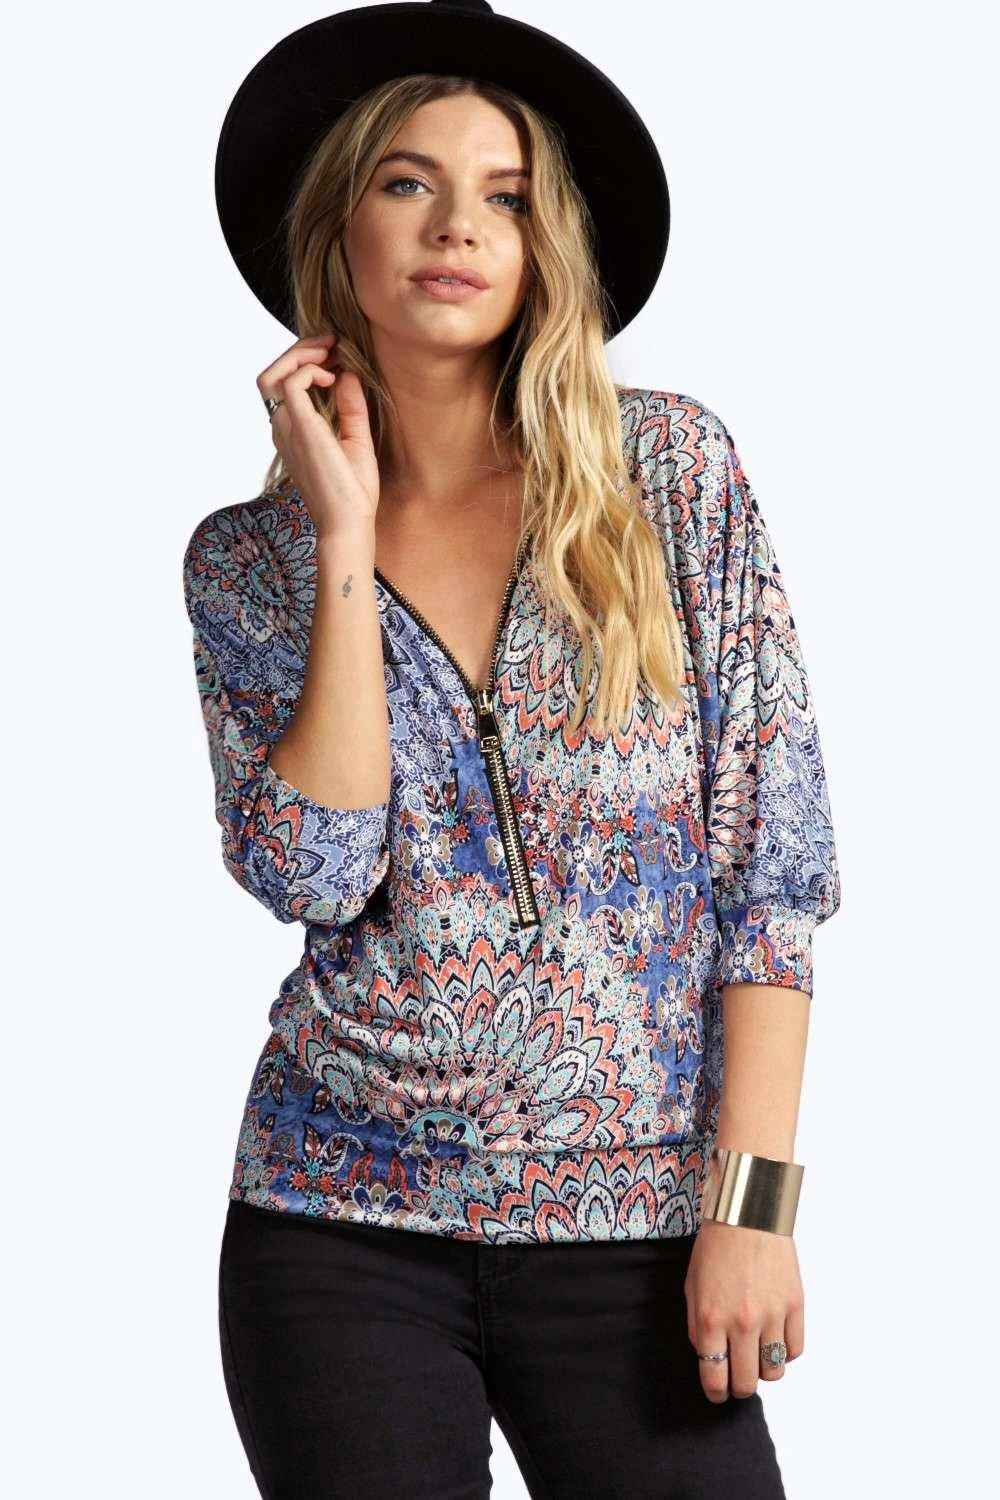 boohoo Tara Printed Zip Tunic - blue